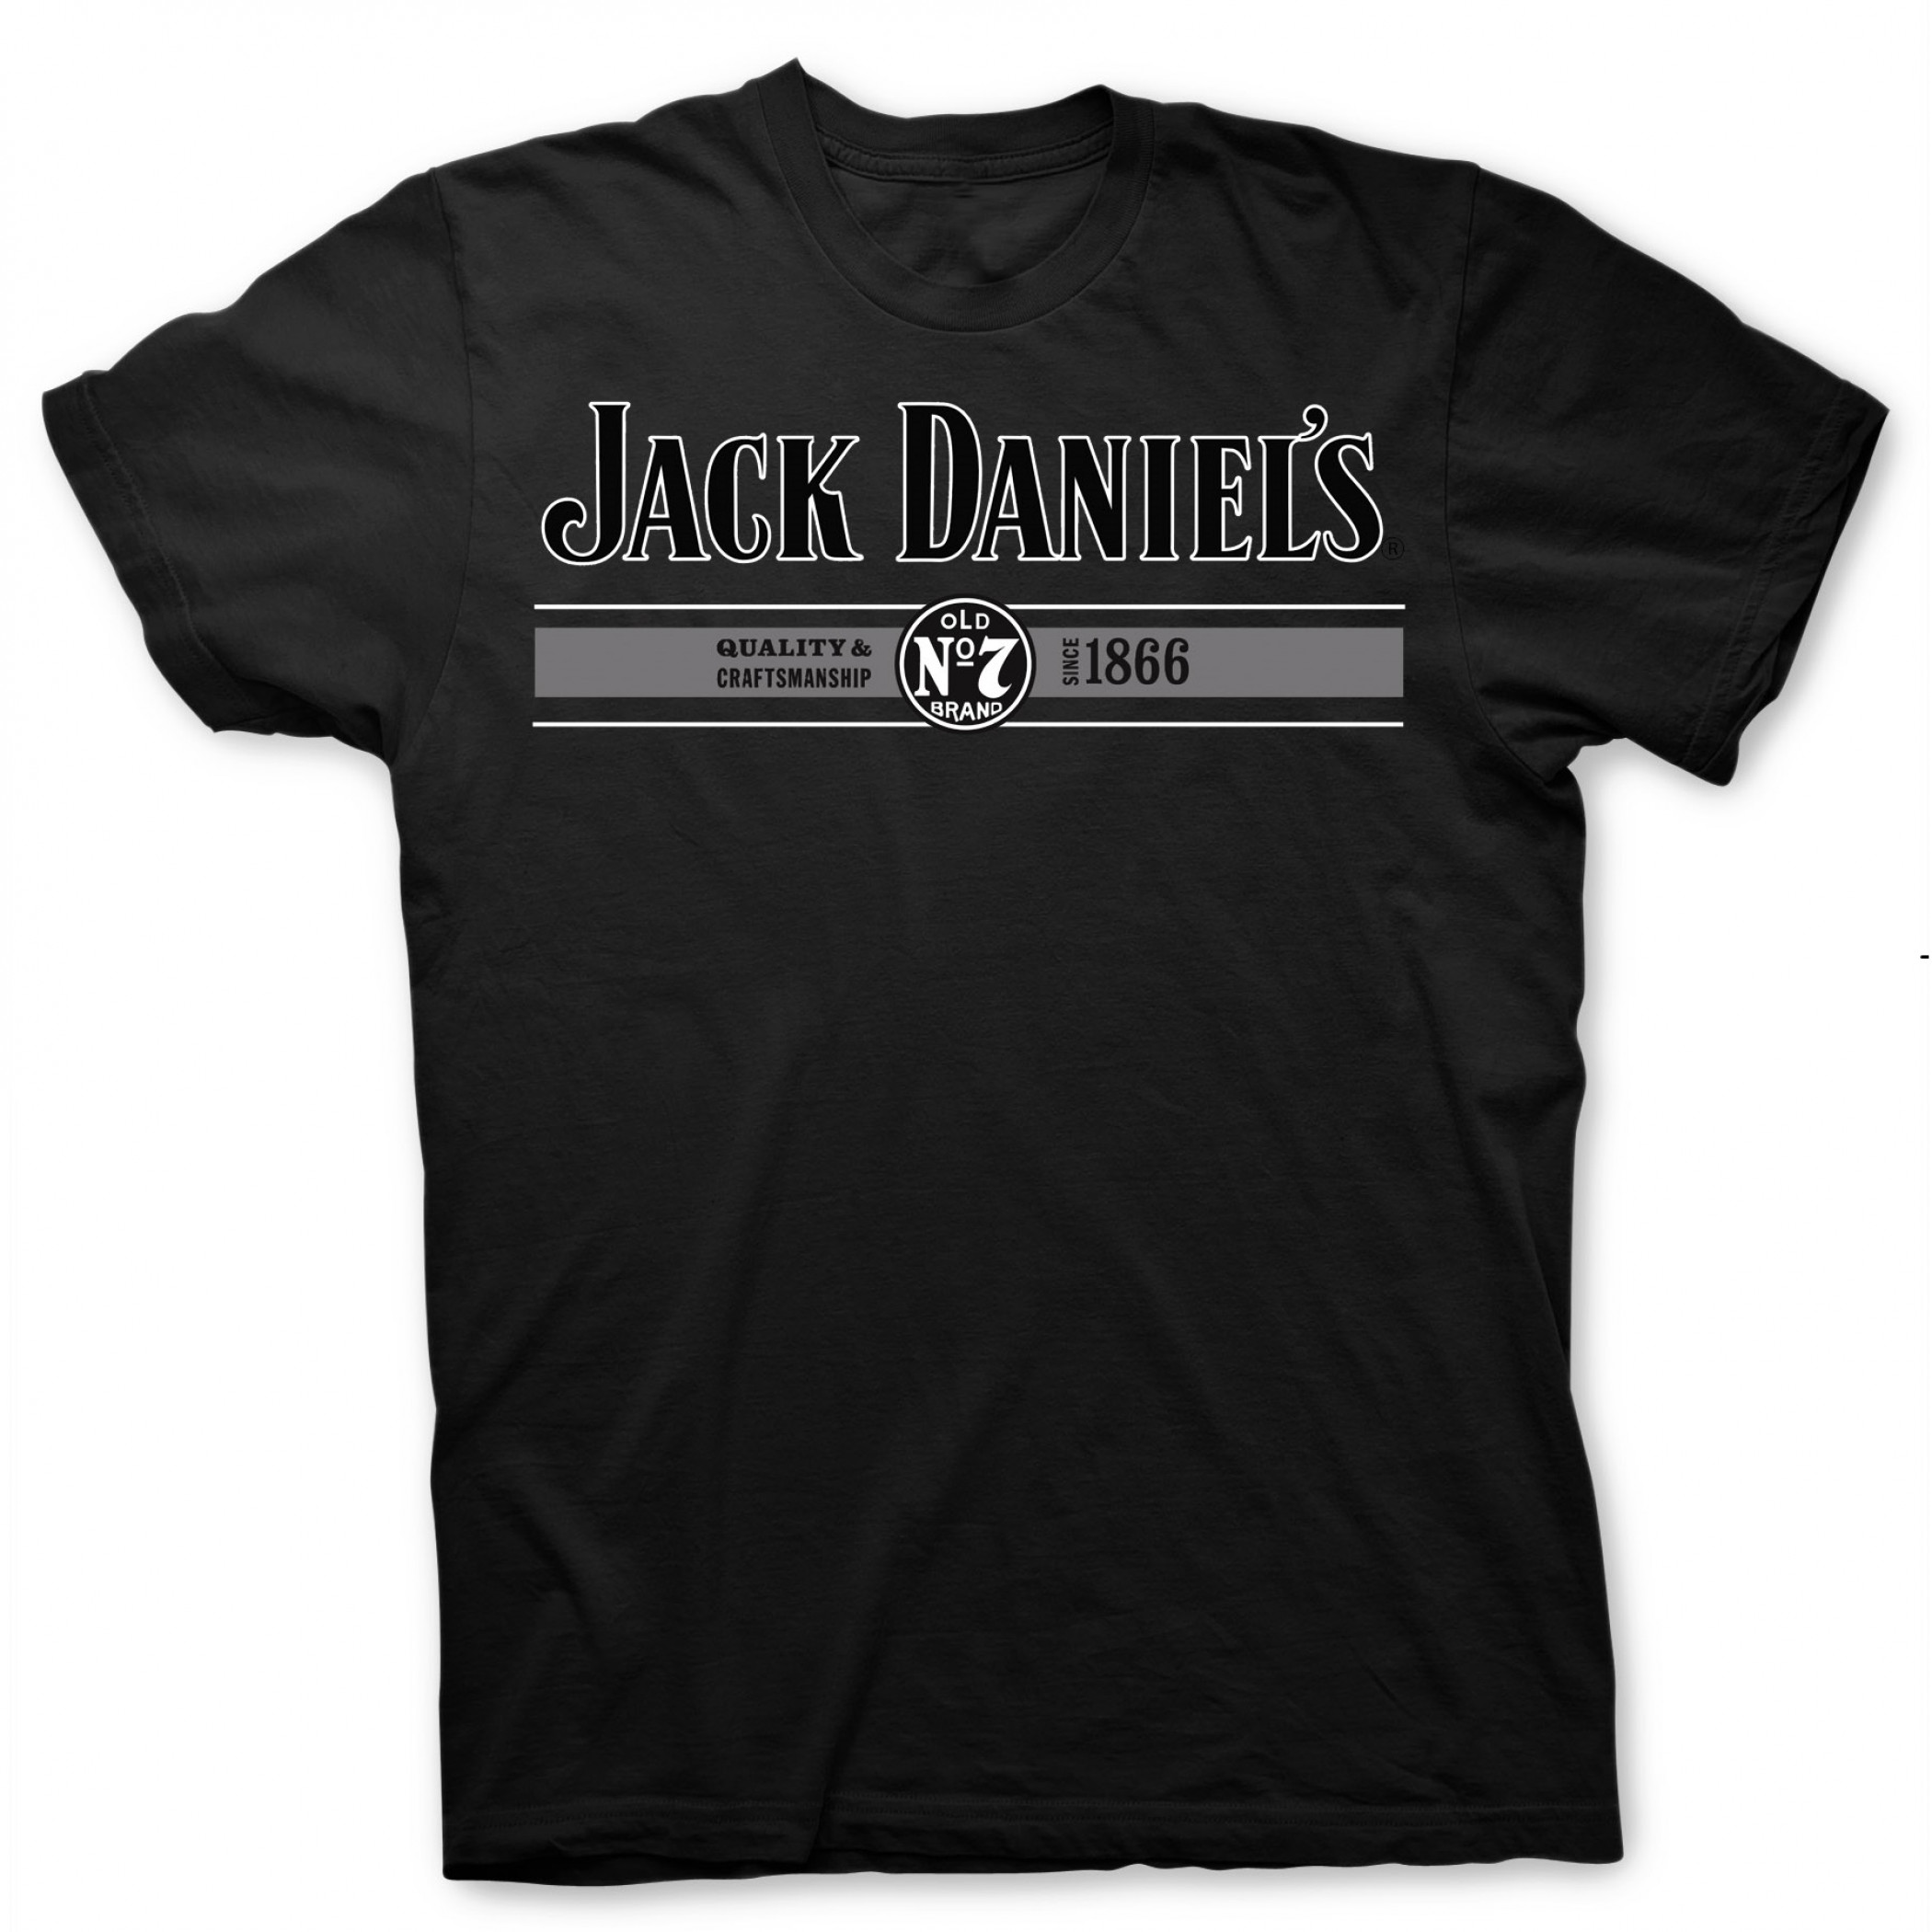 Jack Daniel's Logo Quality and Craftsmanship Since 1866 Black T-Shirt